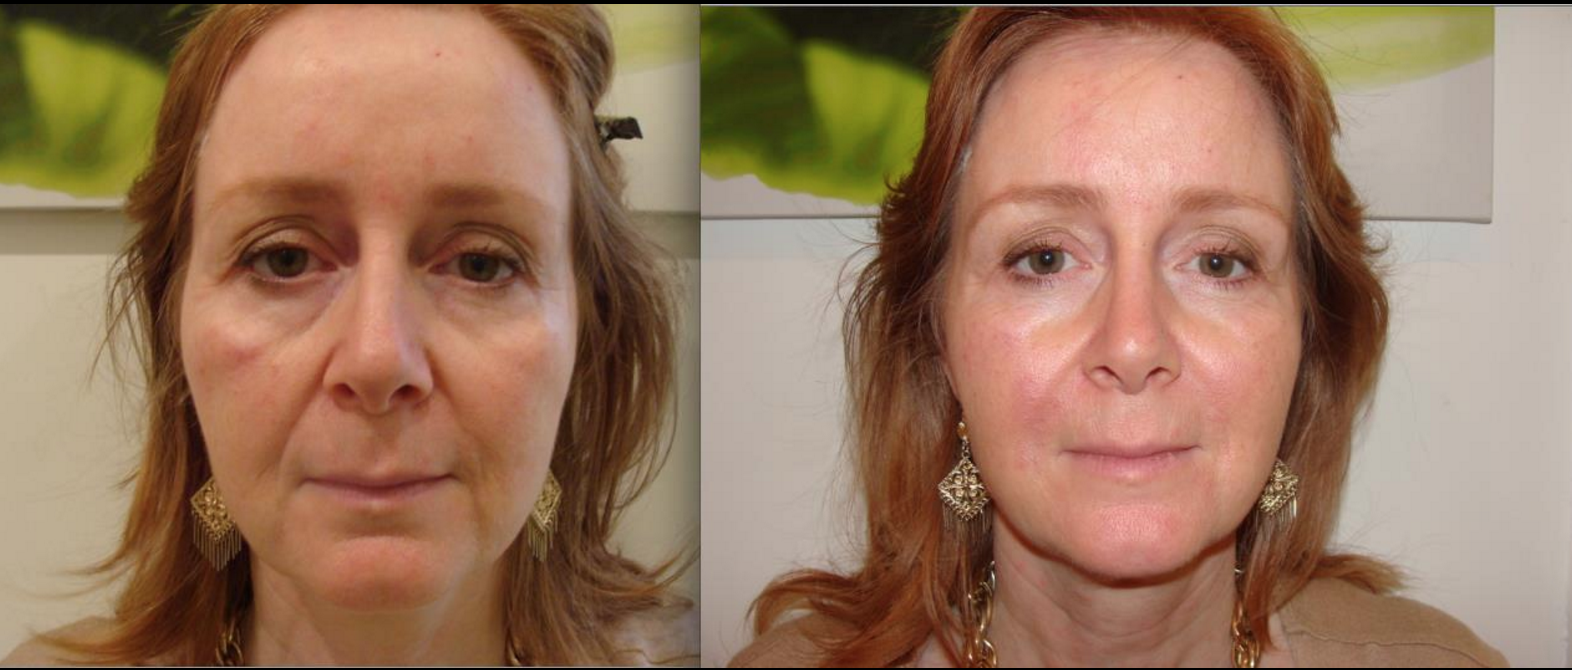 Dermal Fillers In Cheeks Bournemouth